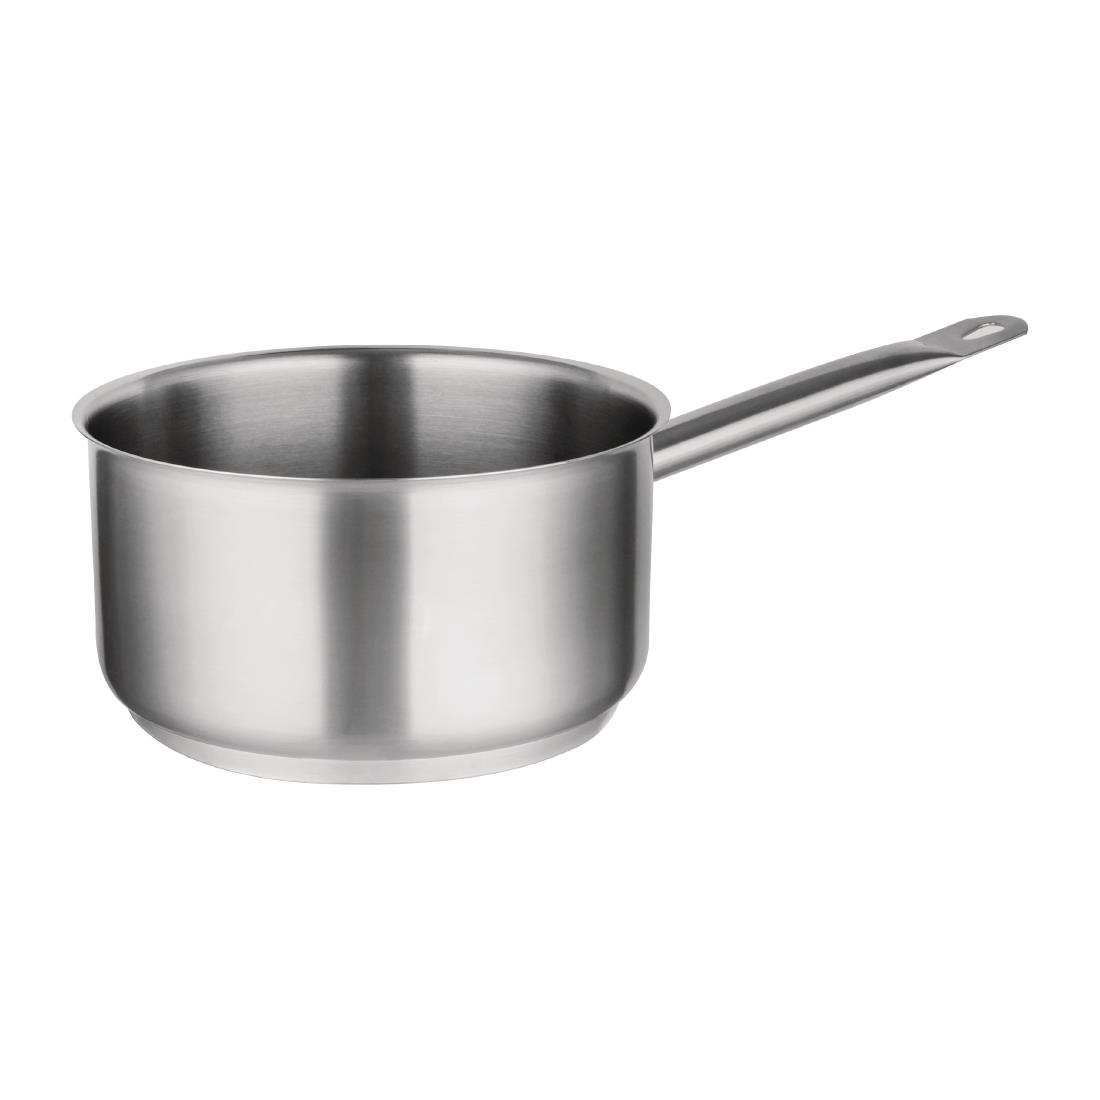 Saucepan Vogue Stainless Steel Saucepan Kitchenware Commercial